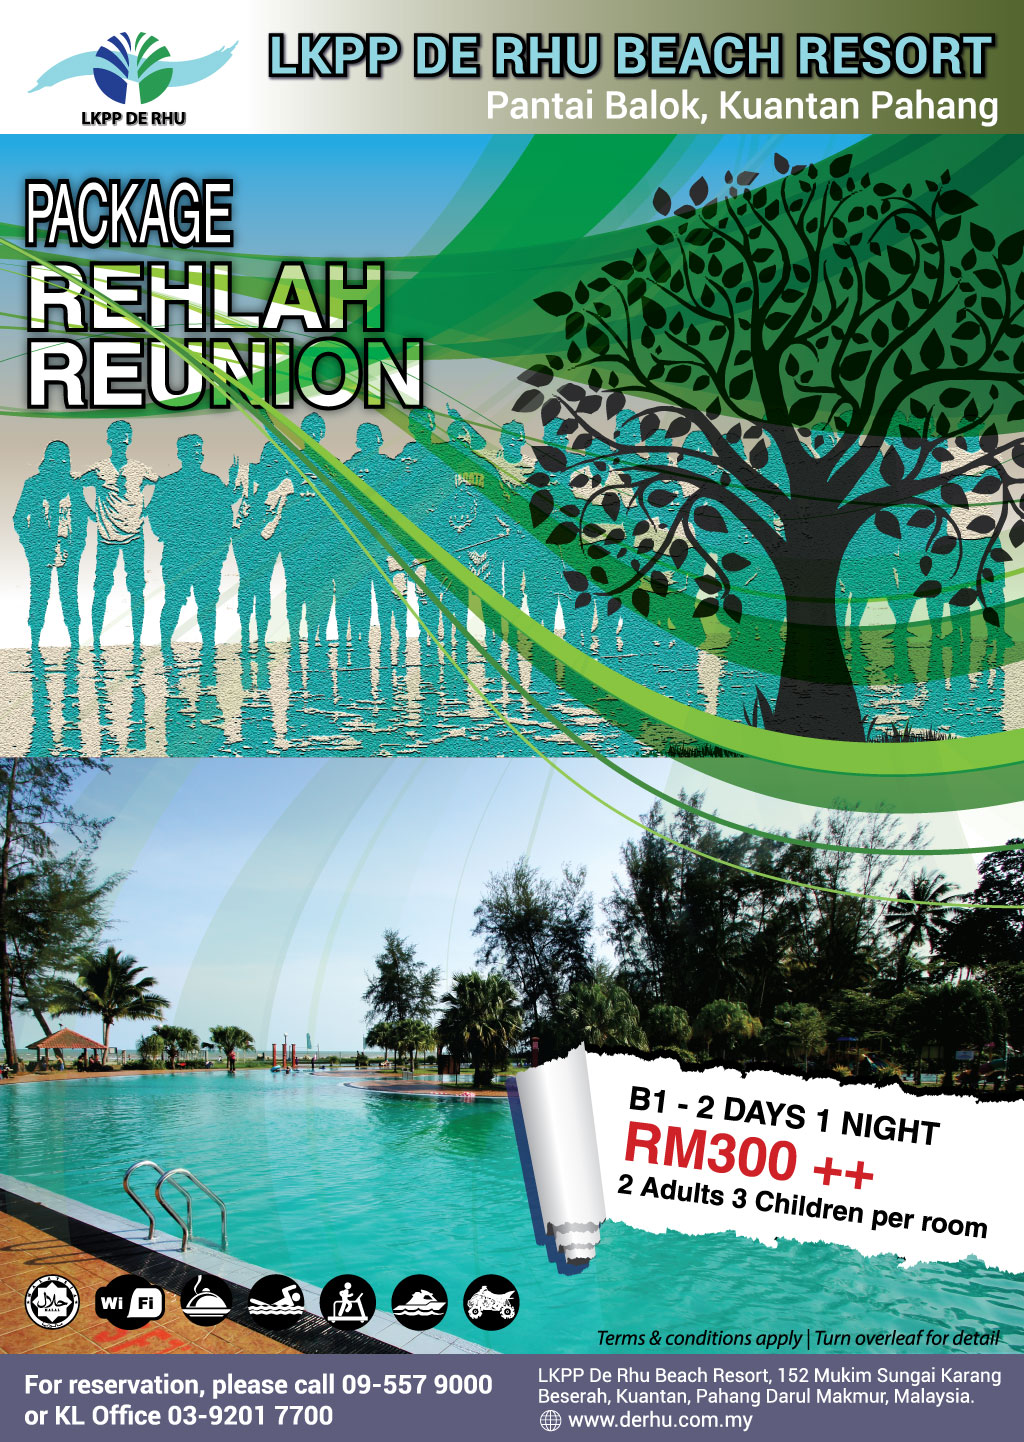 De-Rhu-Beach-Resort-Rehlah-Reunion-Package-2016